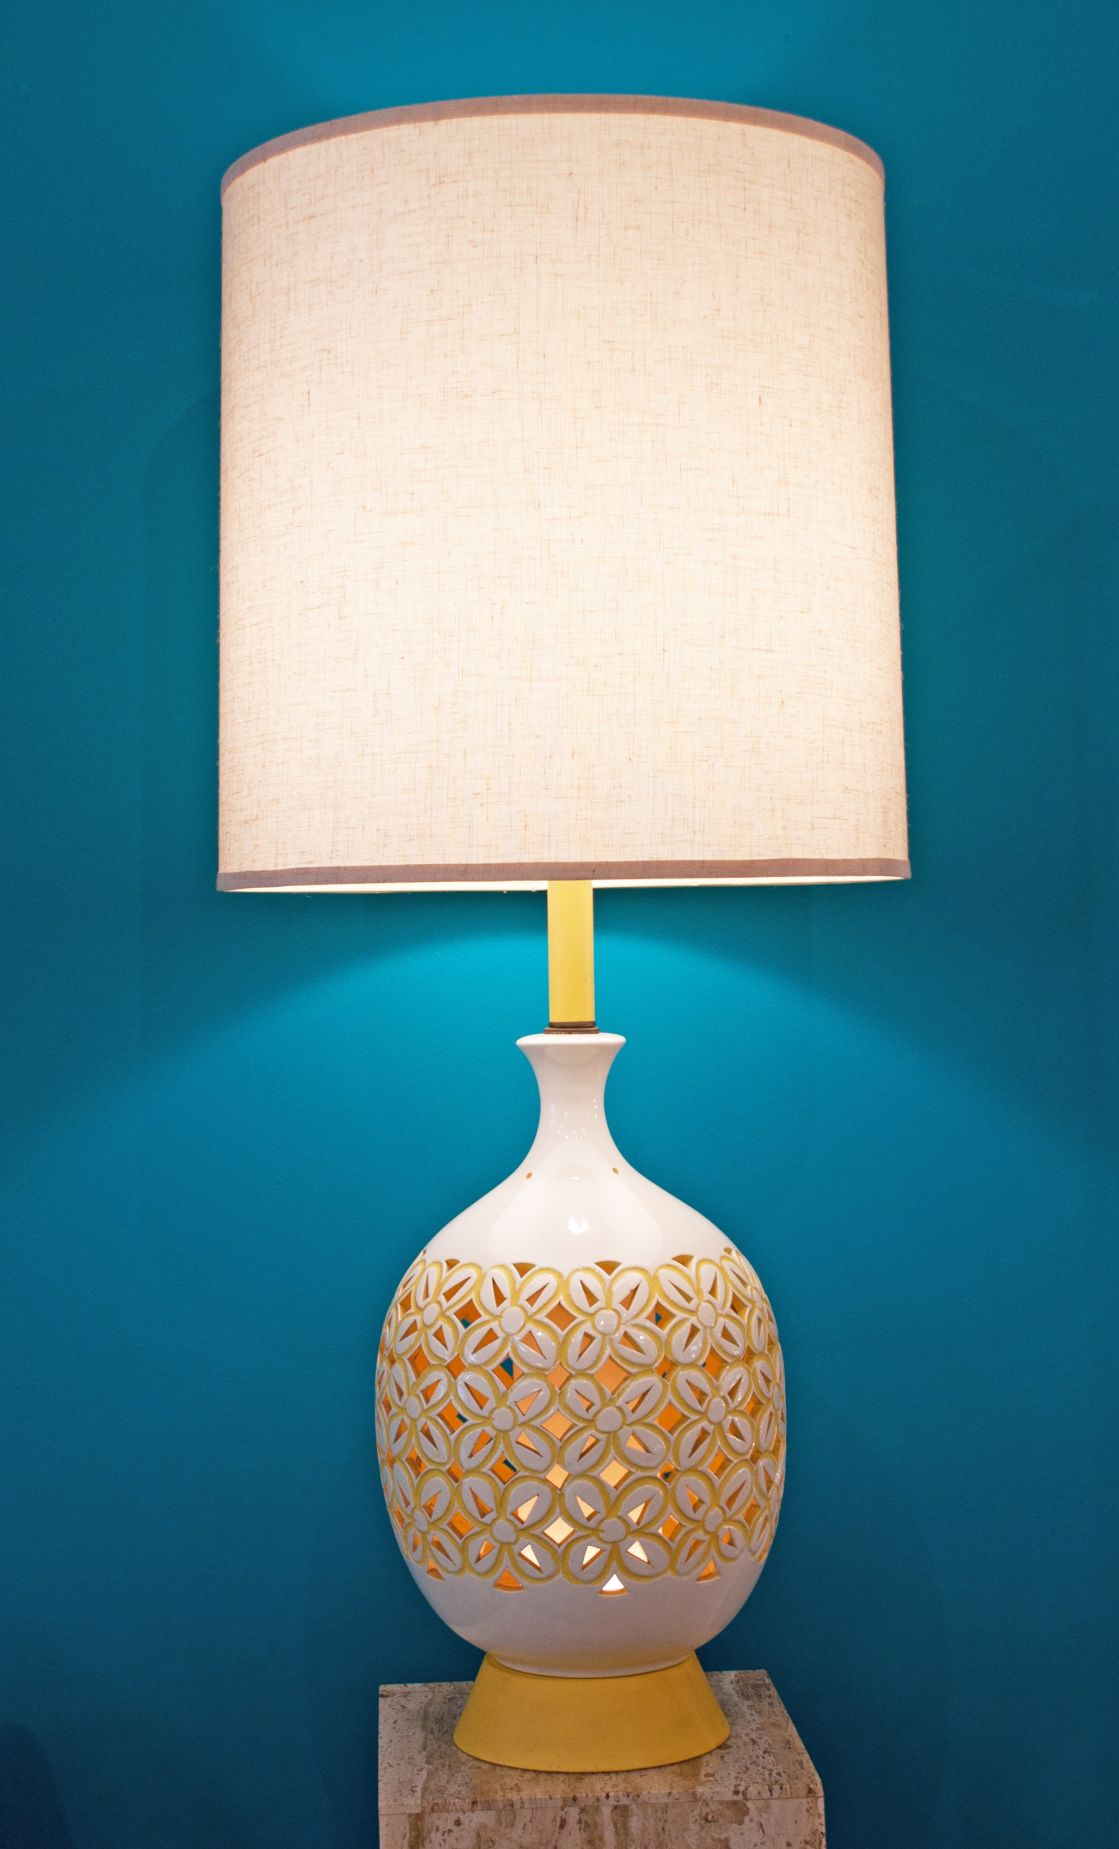 WV Design Team: Brighten Your Home With Vintage Lamps